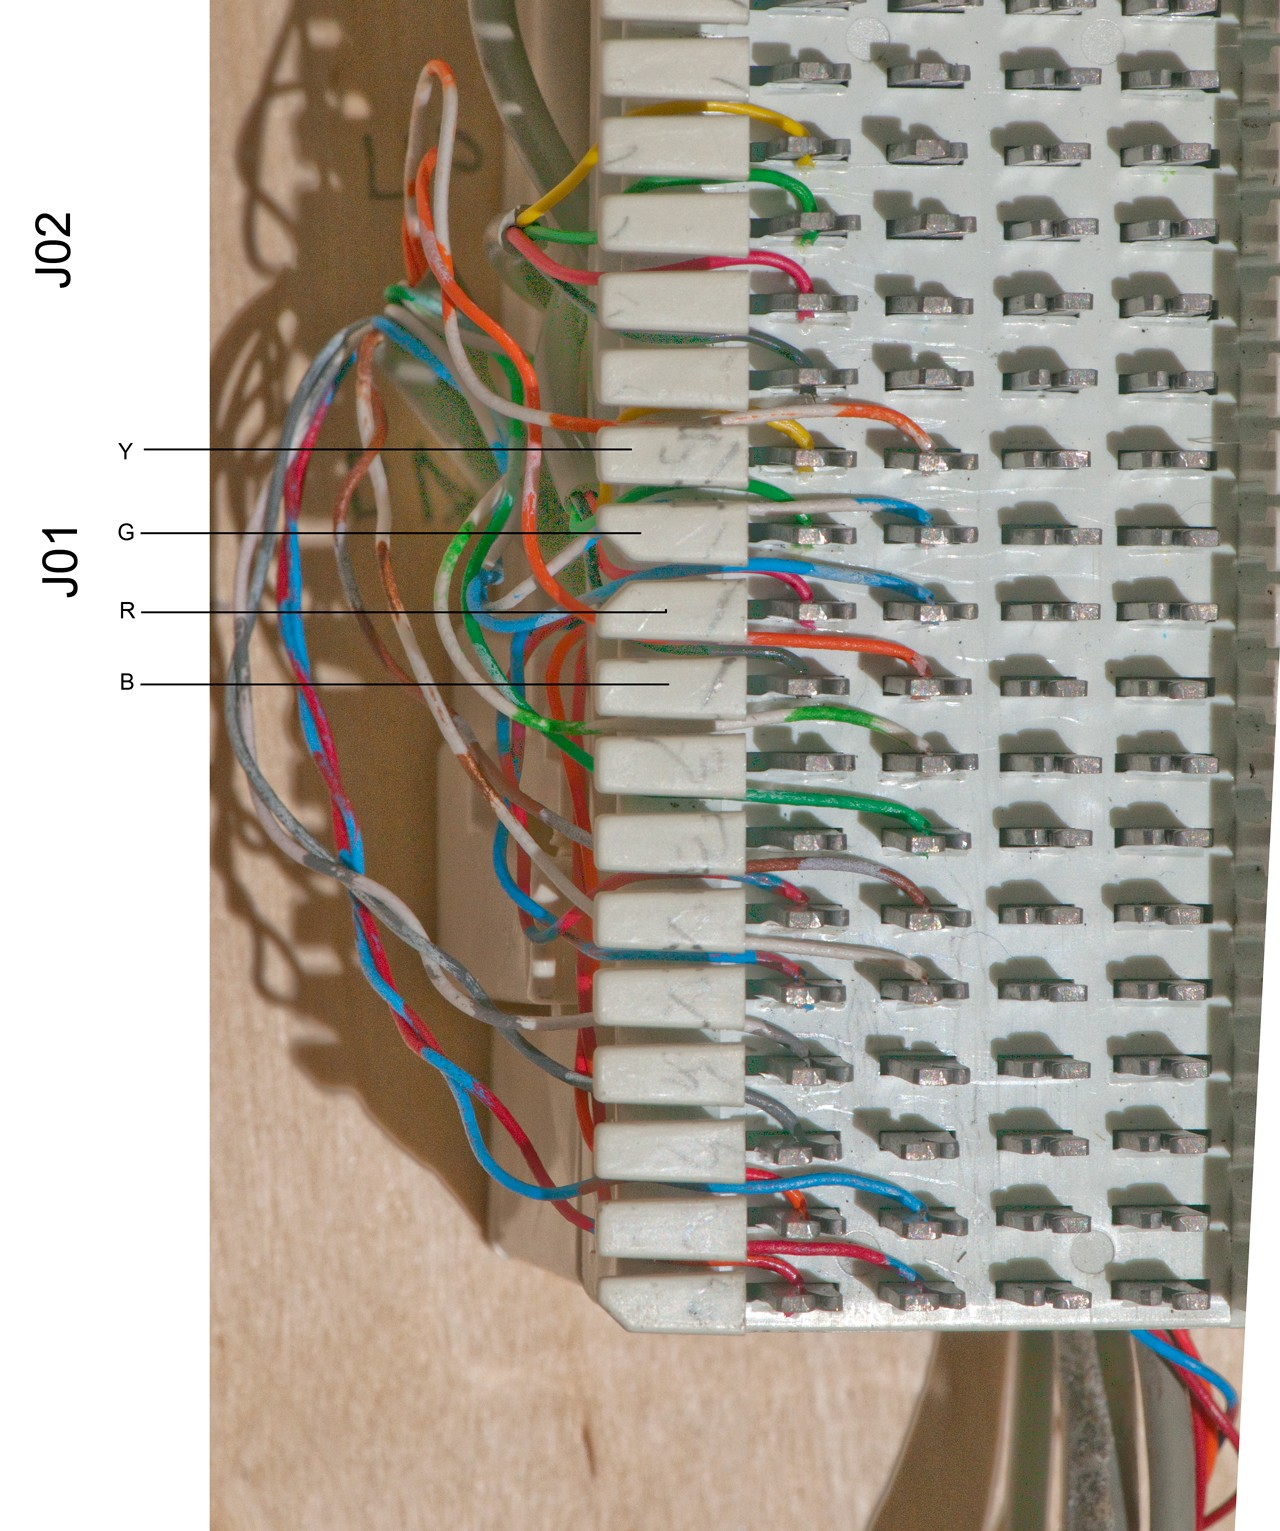 66 Block Wiring Diagram 25 Pair from static-assets.imageservice.cloud